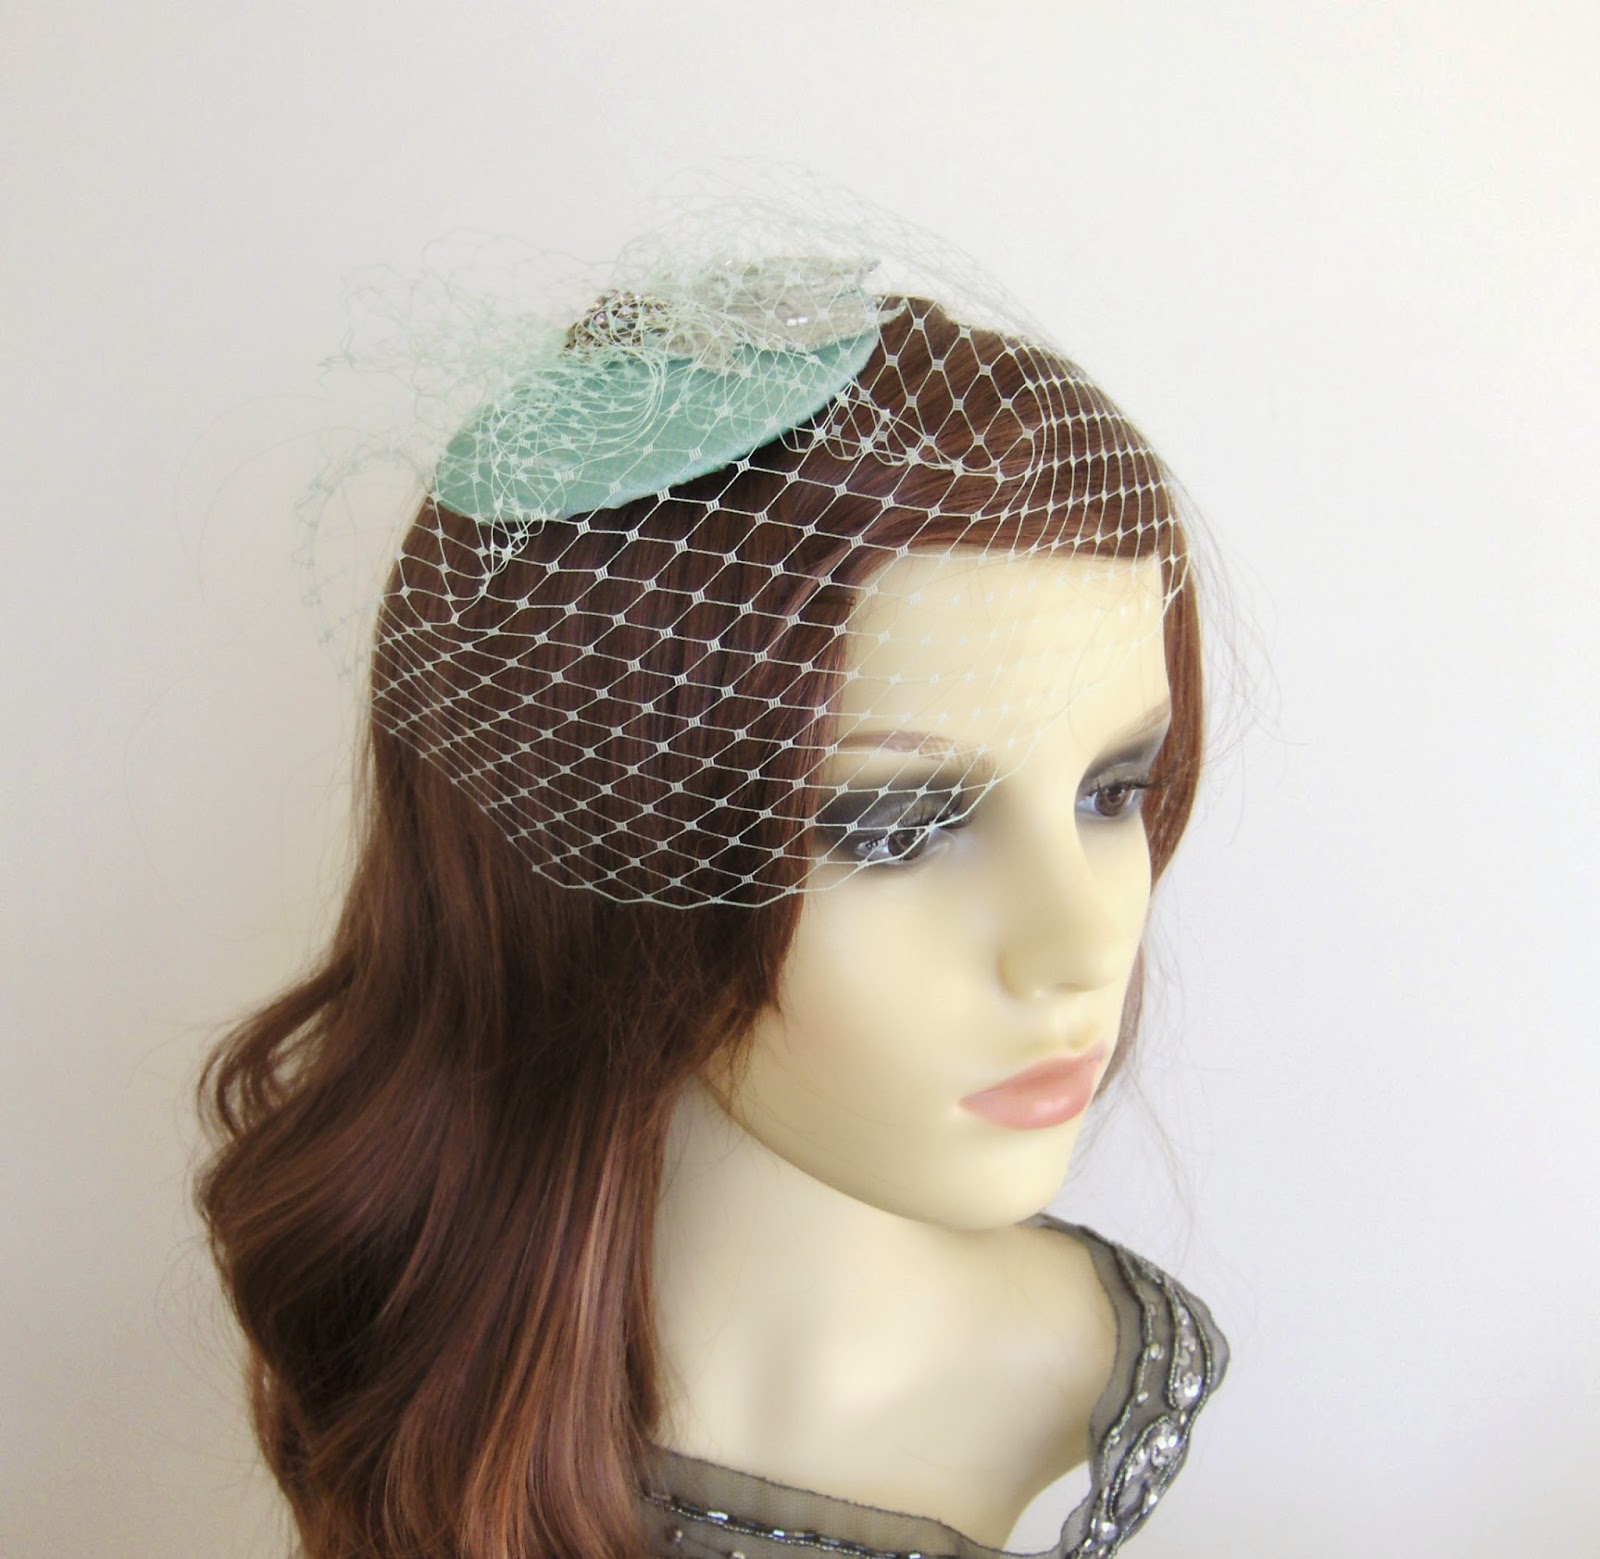 https://www.etsy.com/uk/listing/175607061/mint-green-veil-cocktail-hat?ref=shop_home_active_9